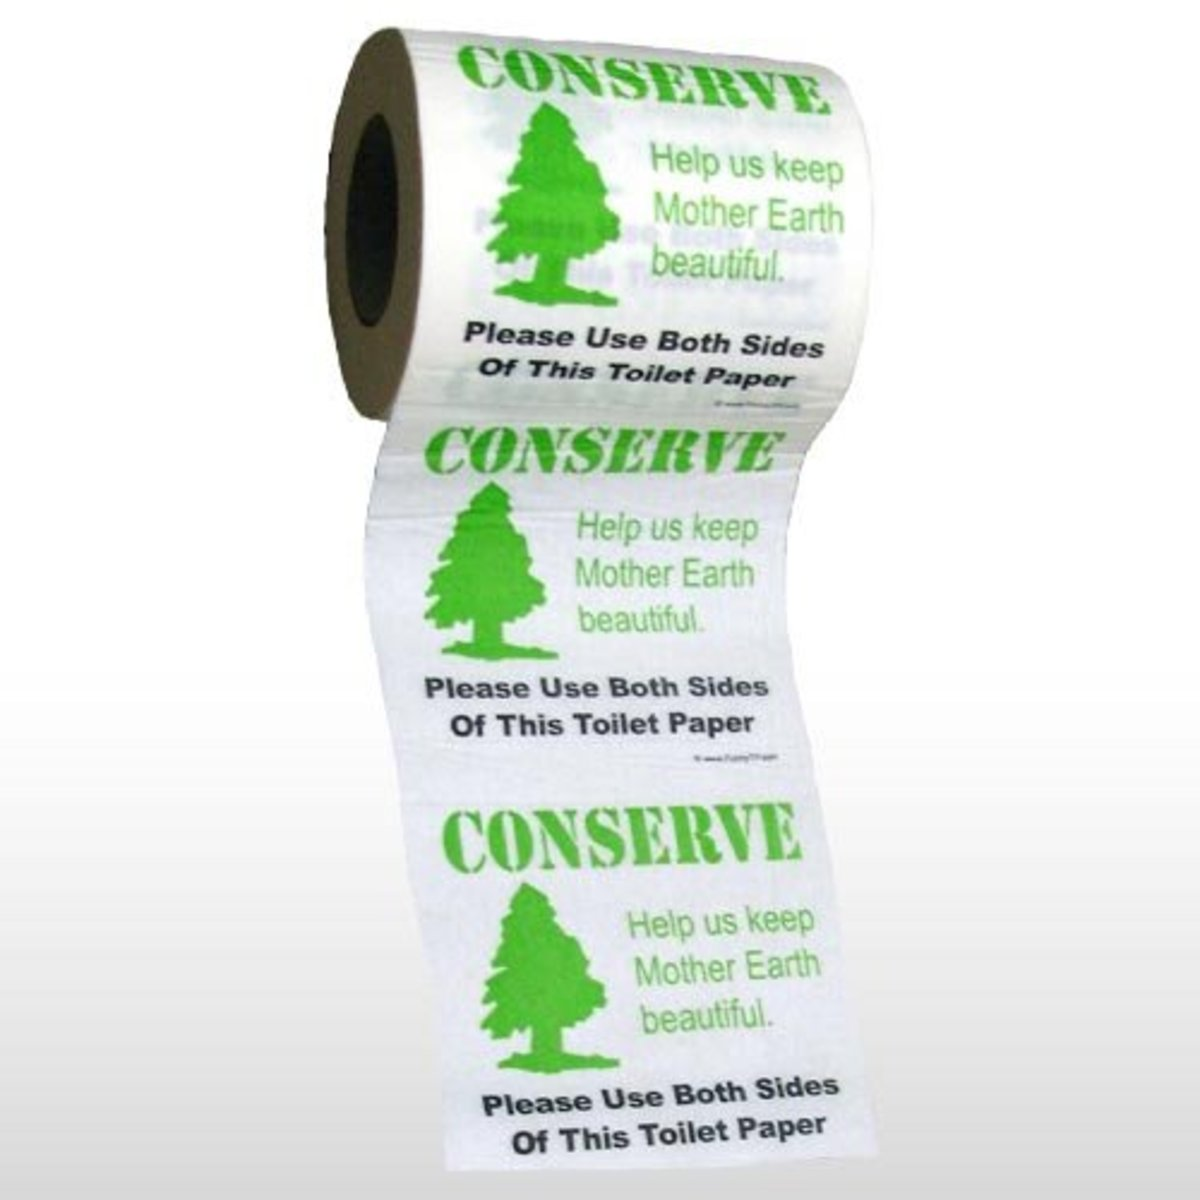 Conserve, Help us keep Mother Earth beautiful. Please use both sides of this toilet paper.""